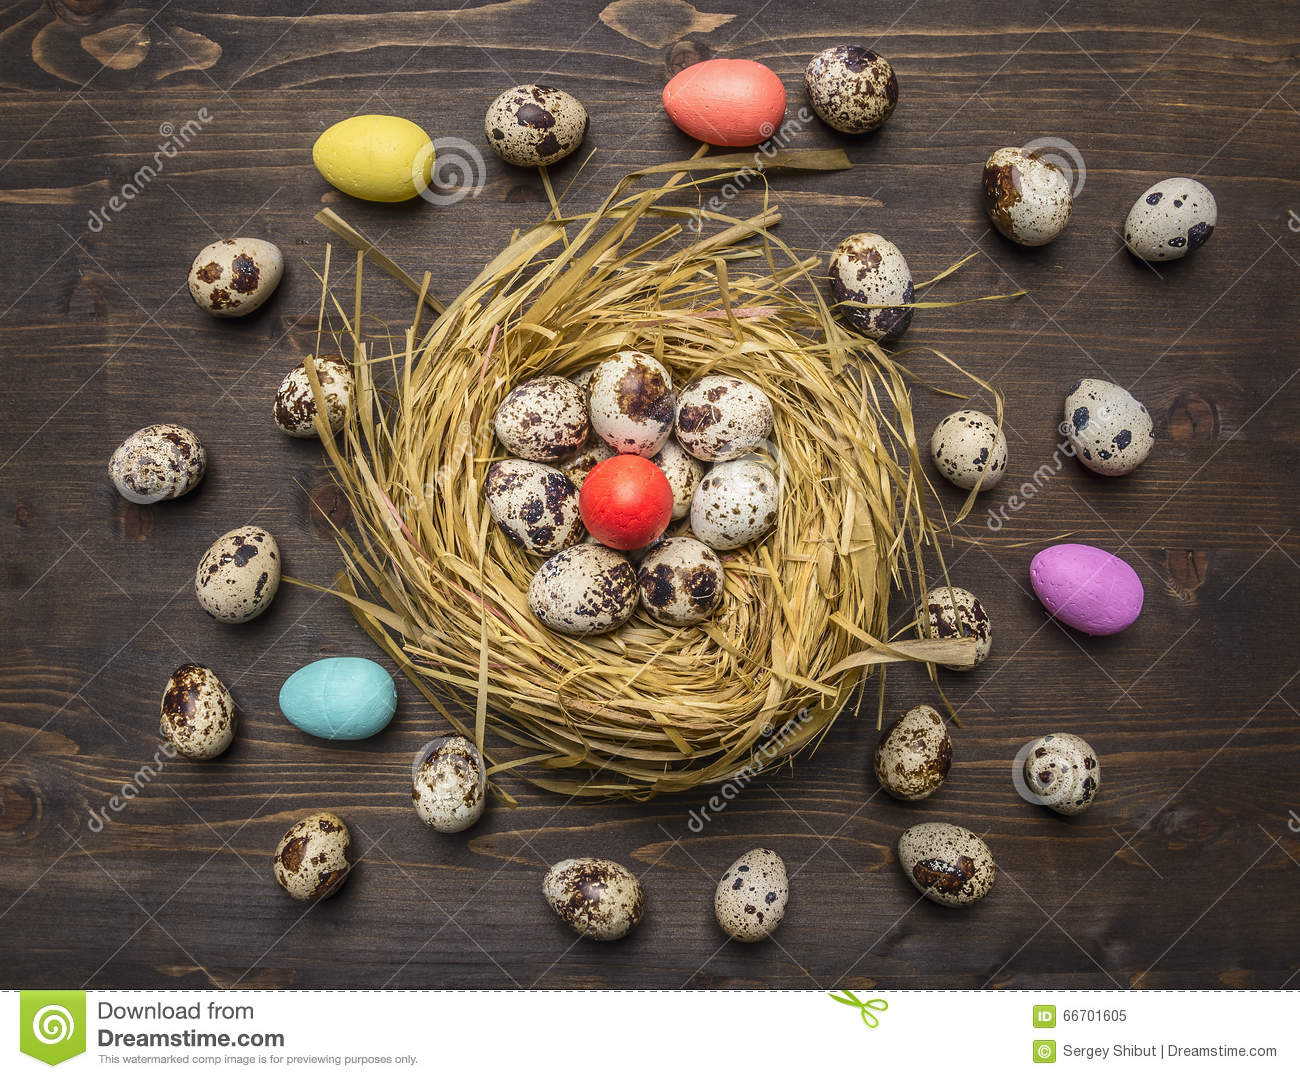 Quail eggs in a nest with colorful decorative eggs for Easter laid out around wooden rustic background top view close up